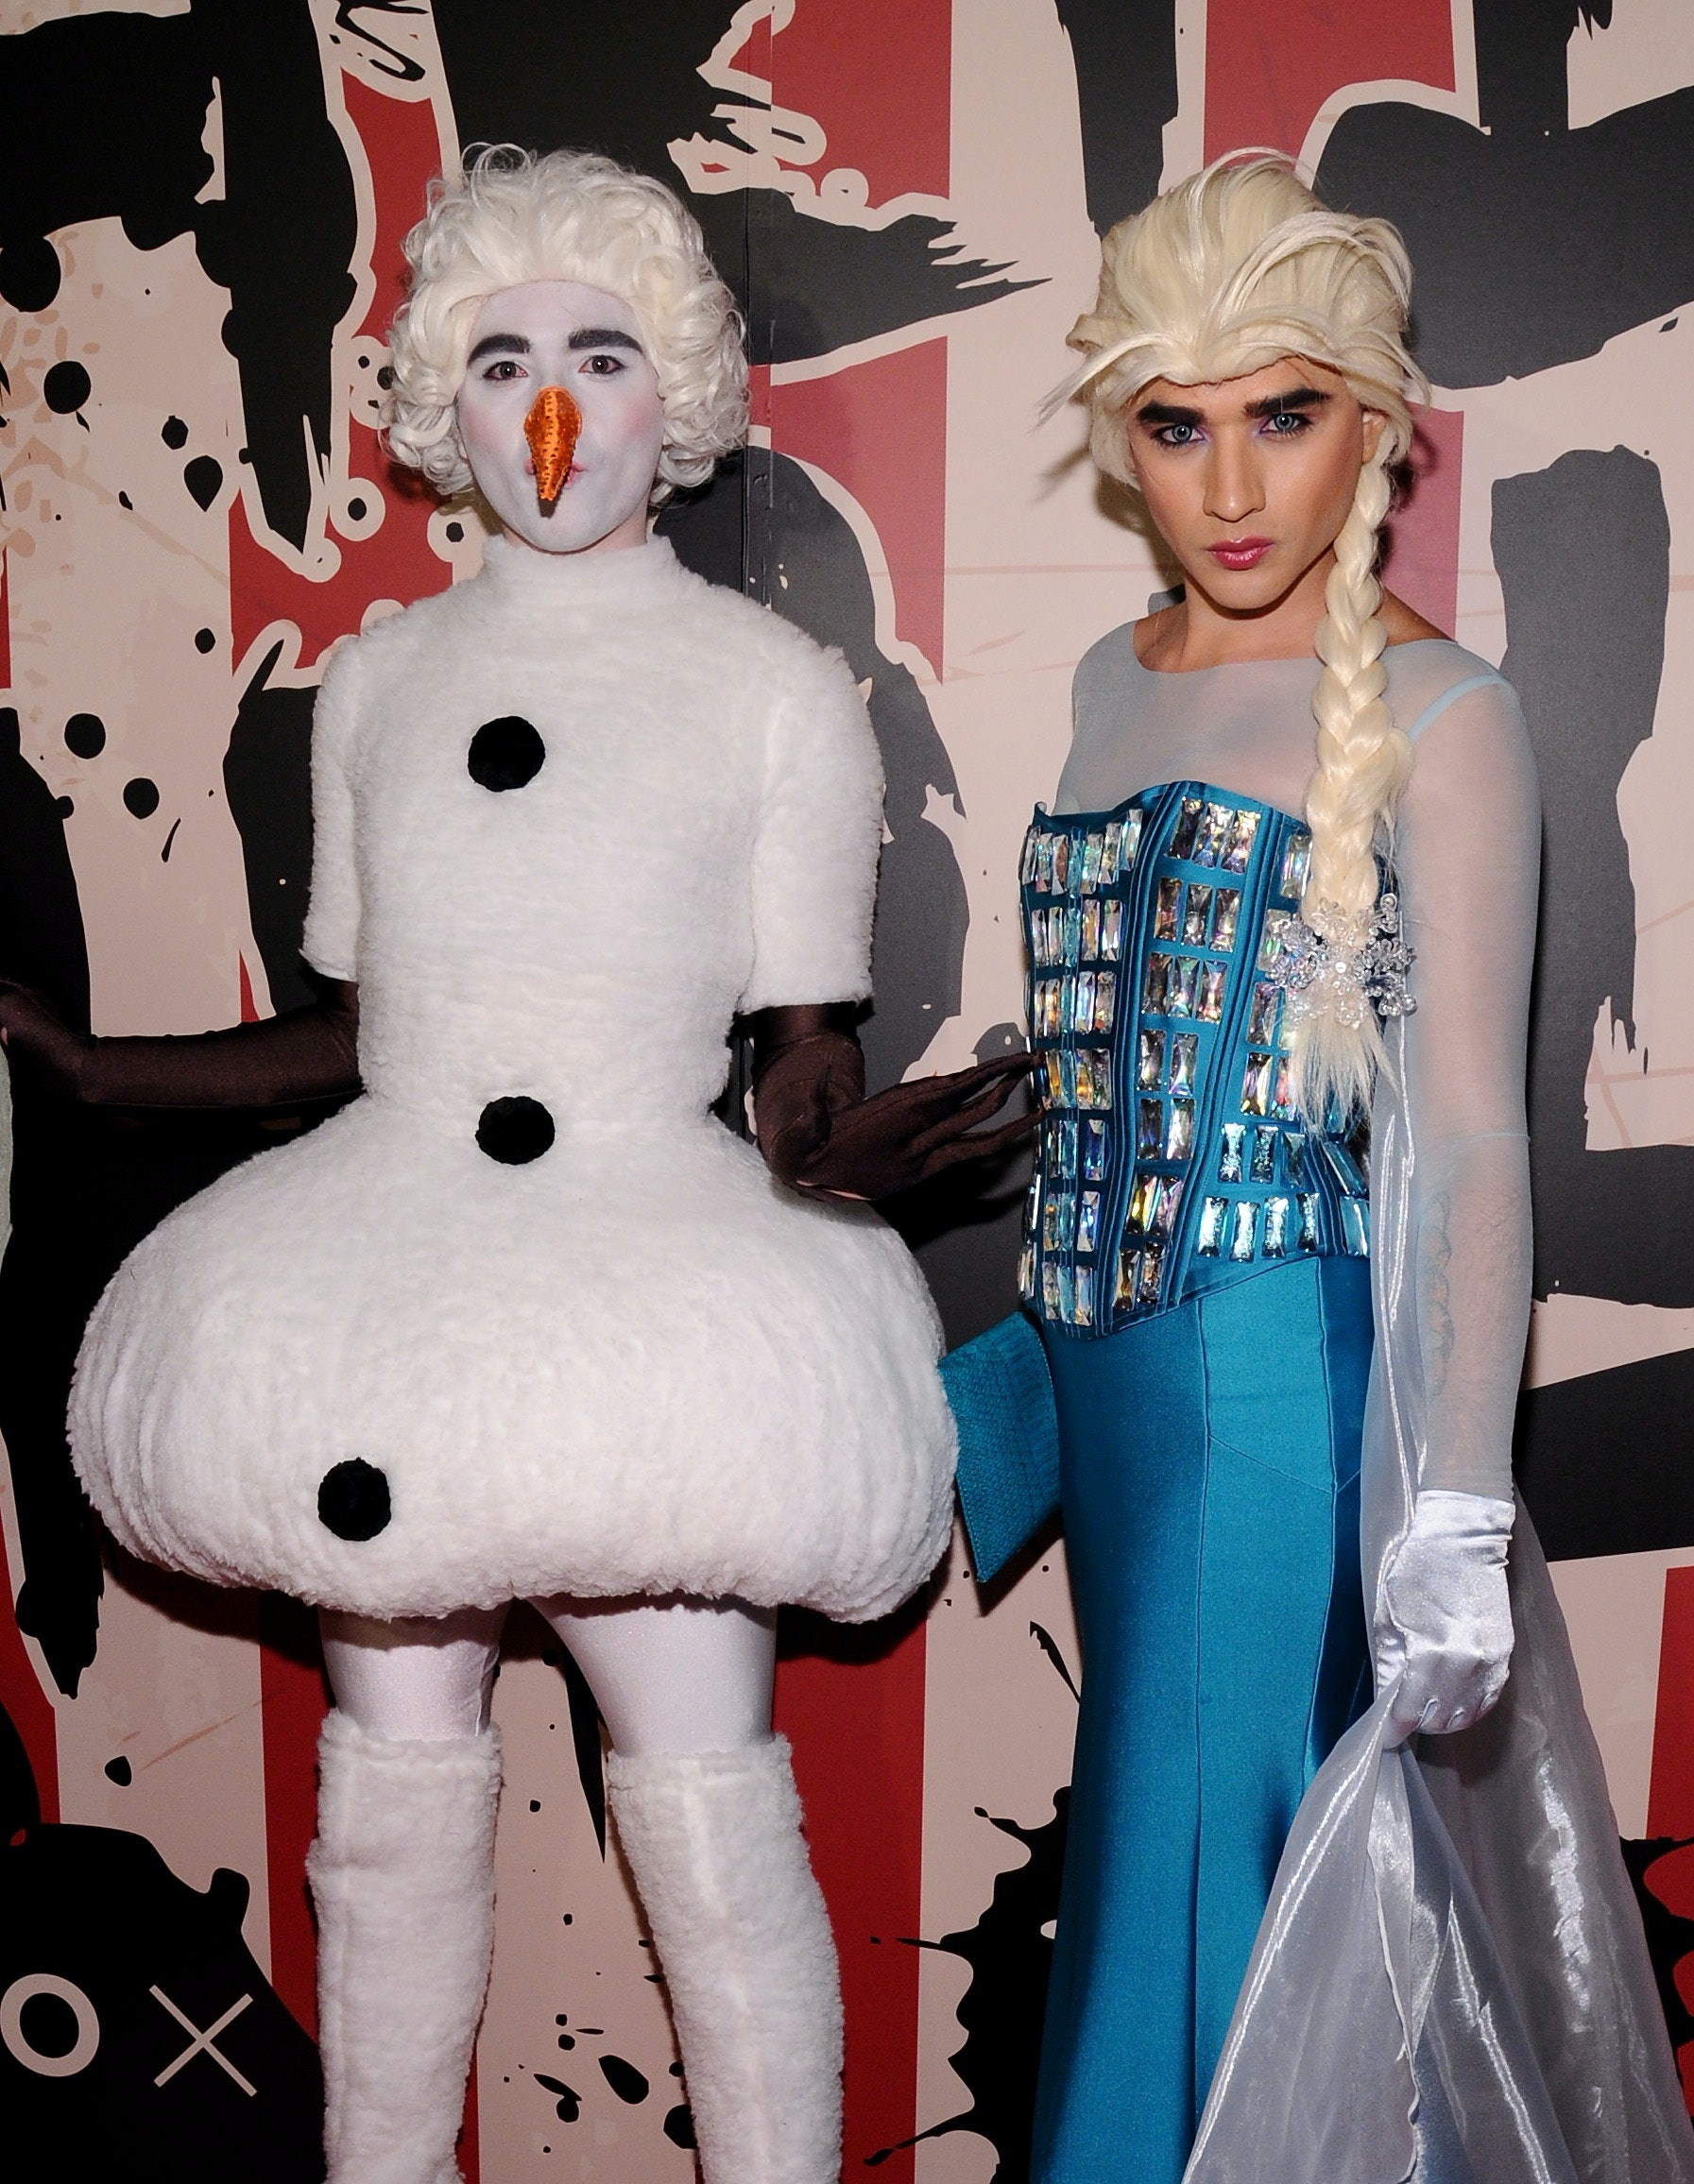 Heidi Klum's Halloween Party Brought Out the Best & Worst In Celeb ...